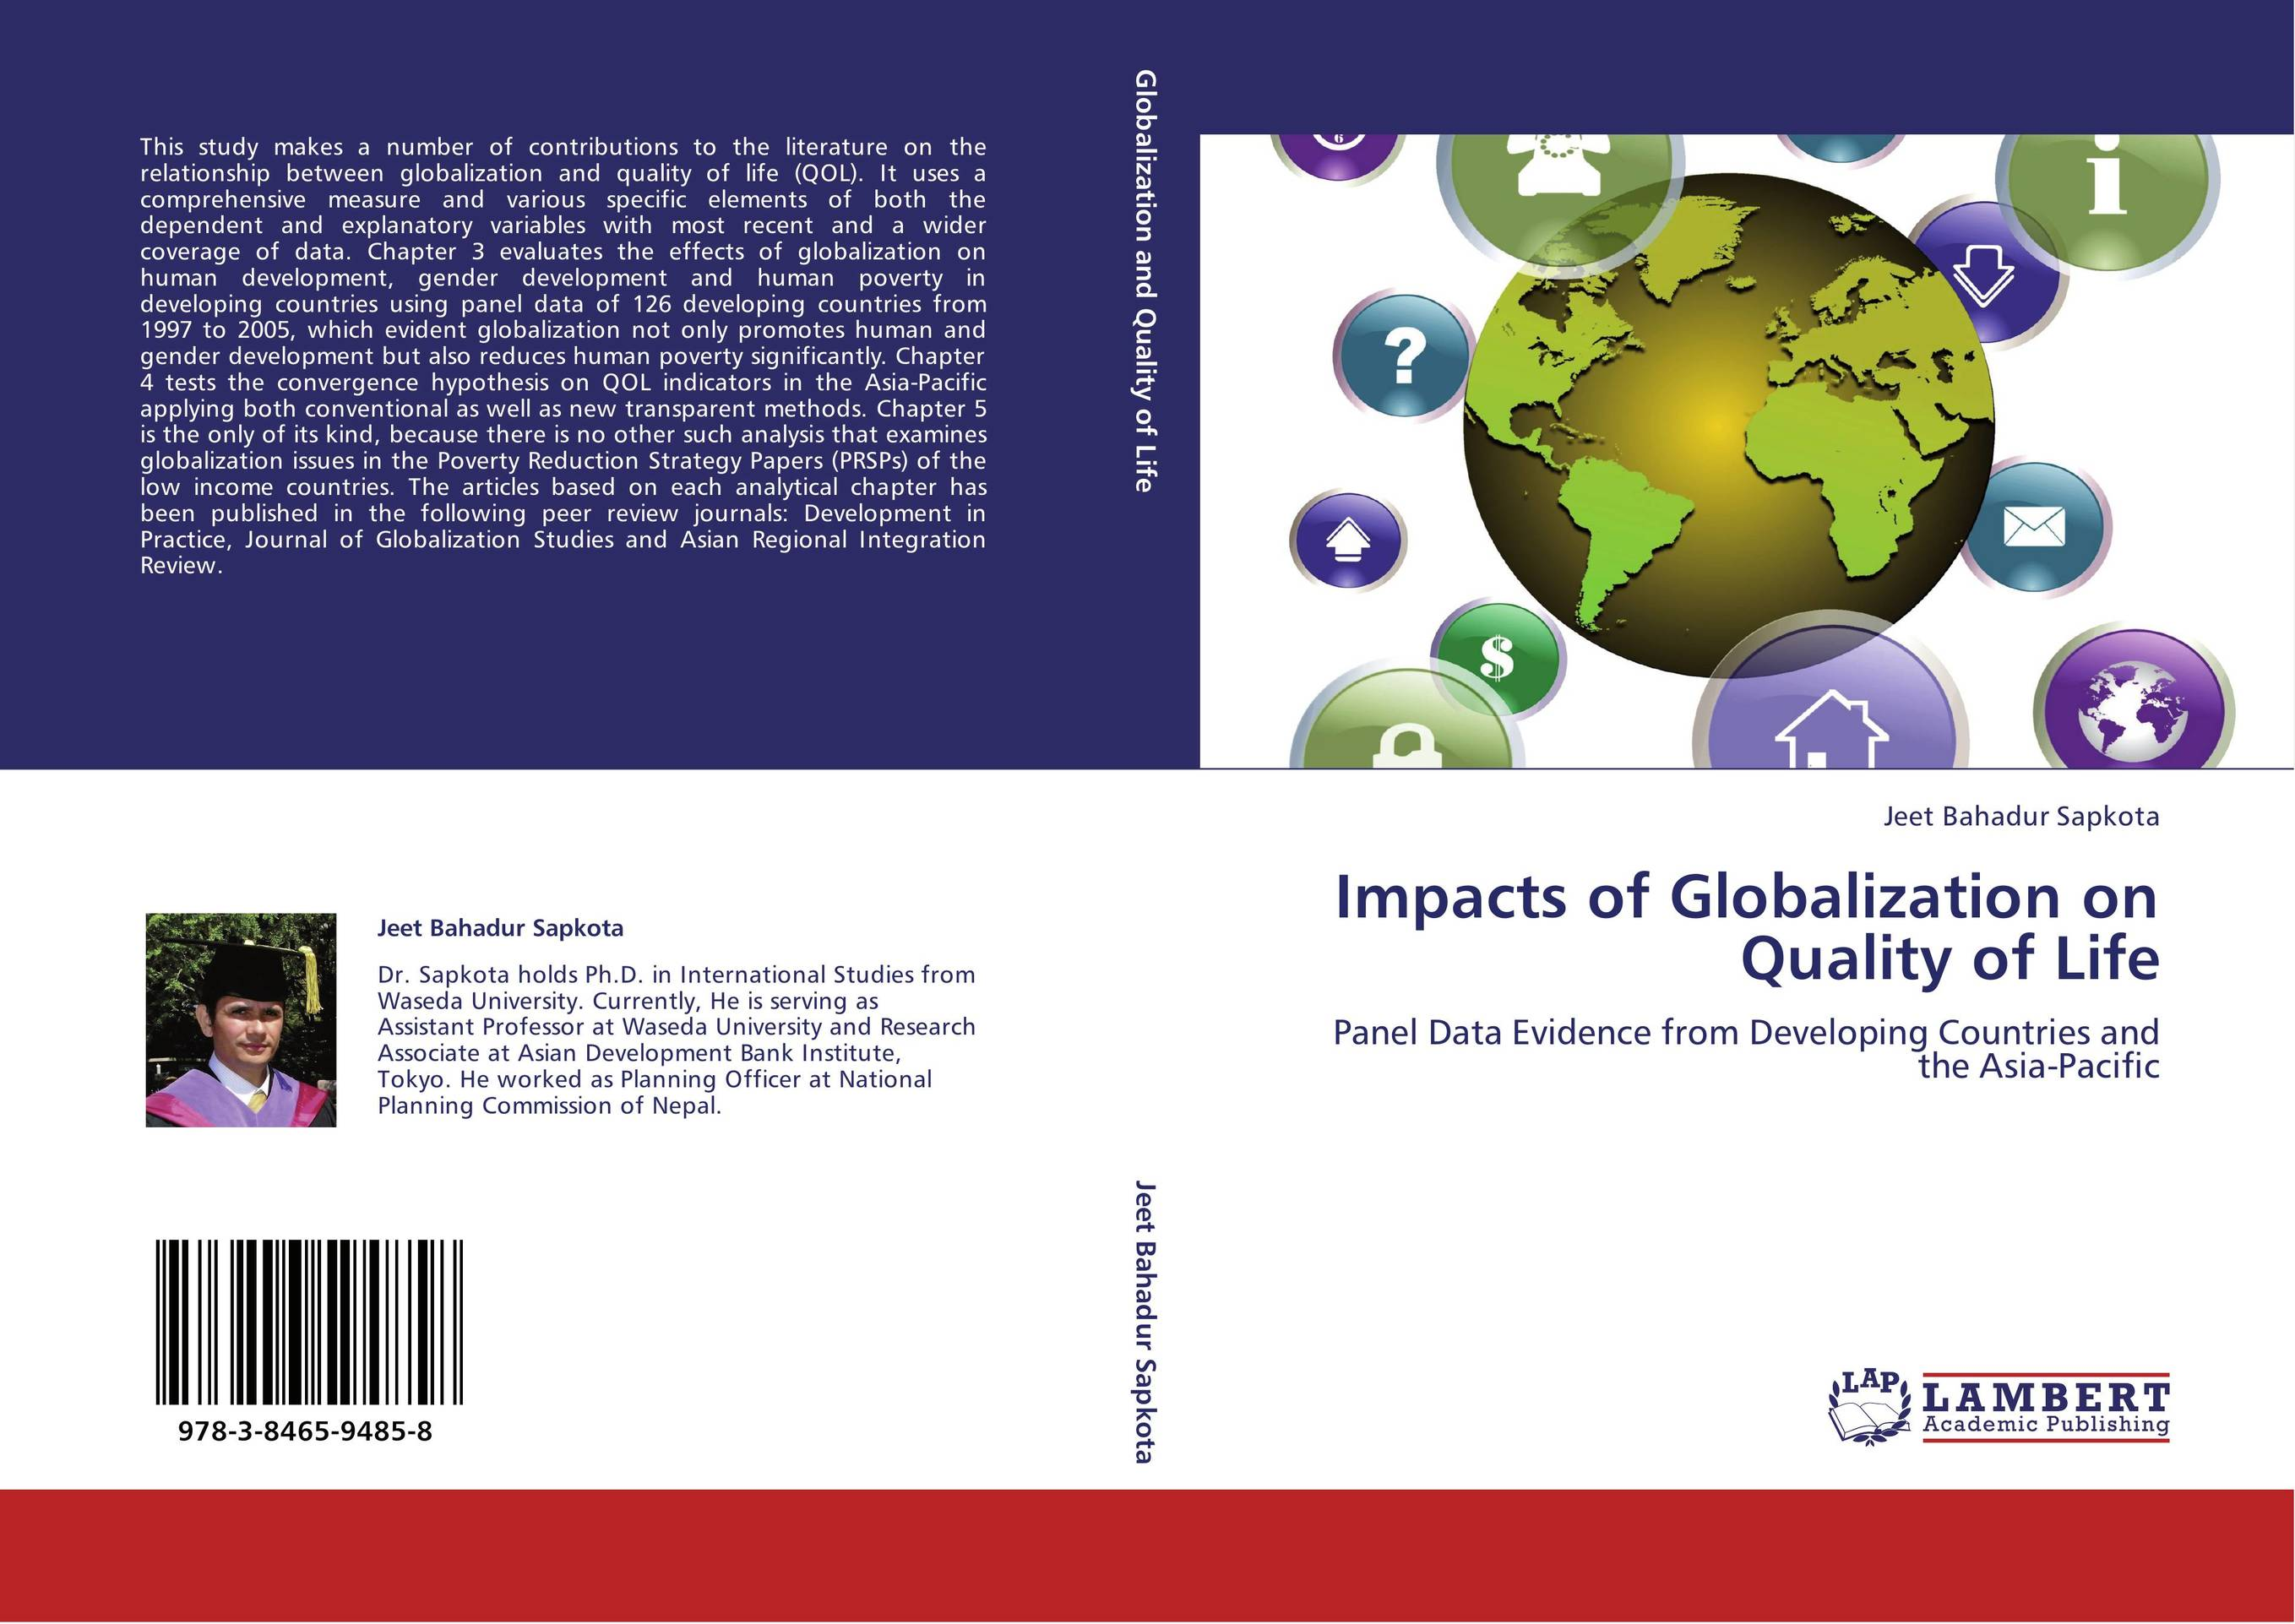 globalizations impact on poverty Report abuse transcript of globalization and its impact on poverty of economic development poverty shifts south to areas already lacking resources poverty shifts north with immigration, increasing stress in the workforce.